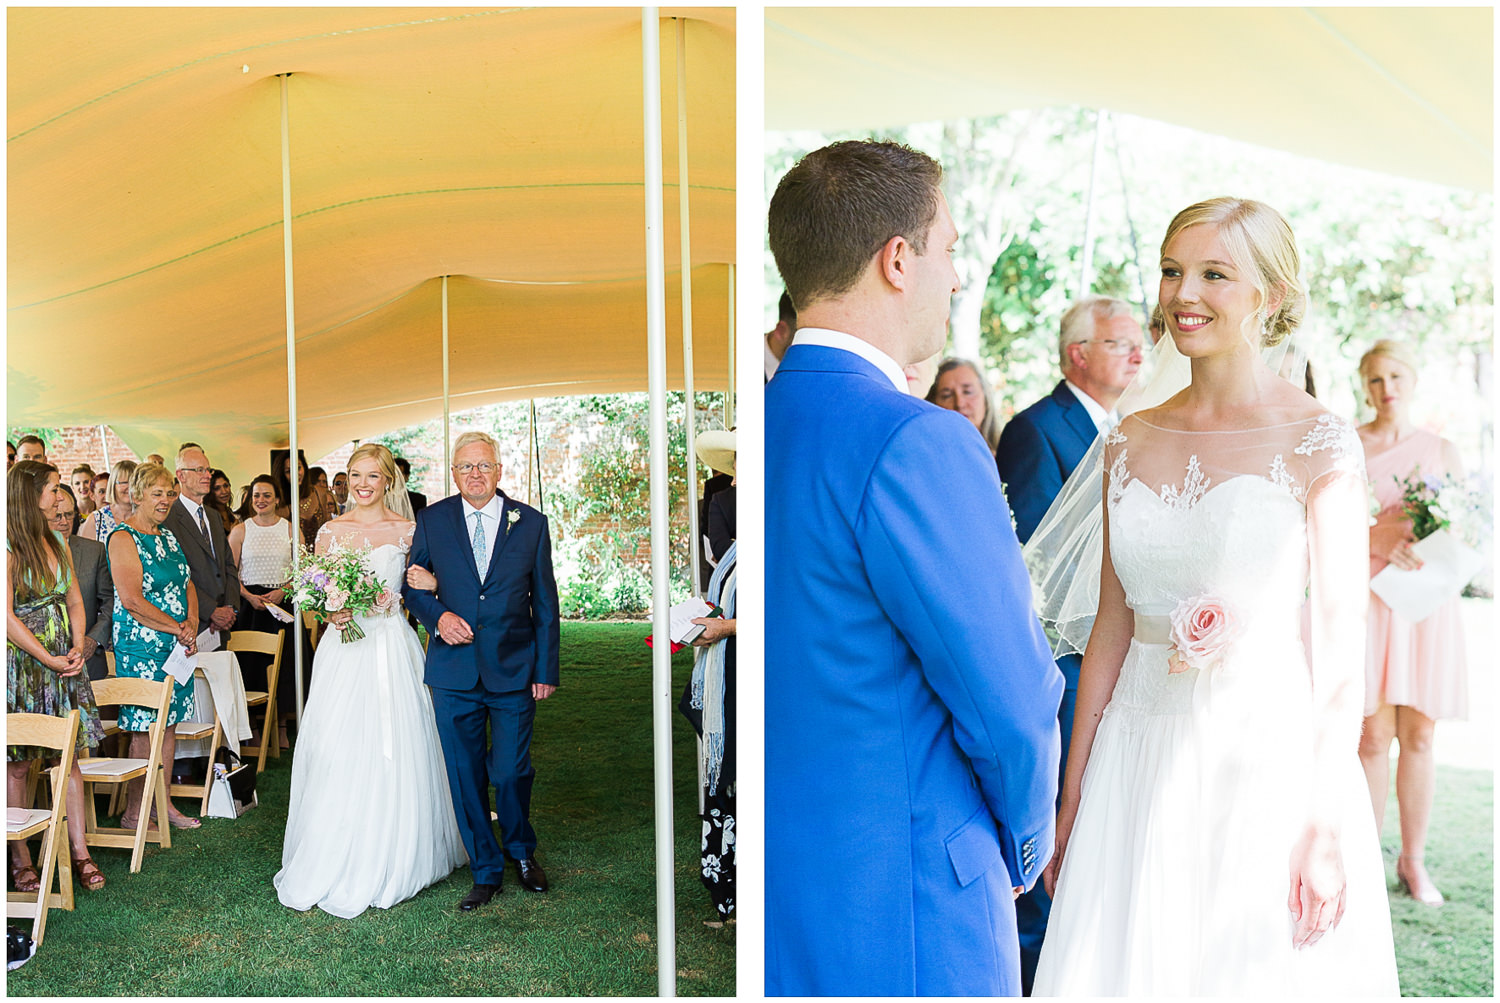 outdoor ceremony, Newington House, Bride walking down aisle